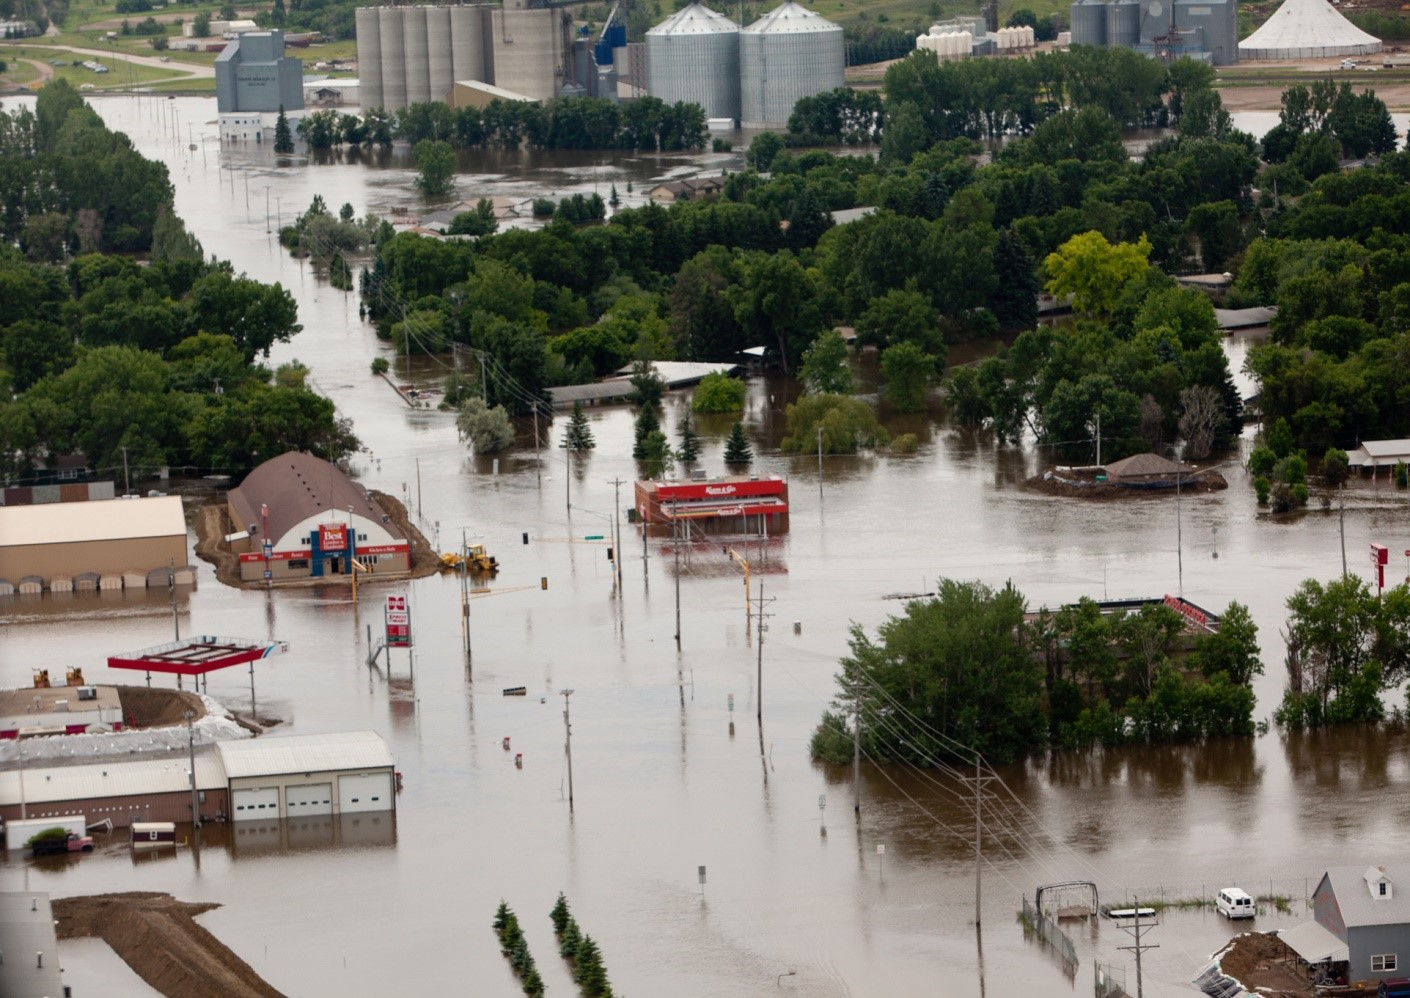 The 2011 Souris River flood, including communities like Burlington, North Dakota, has led to a new IJC study on ways to limit damages in the future. Credit: FEMA